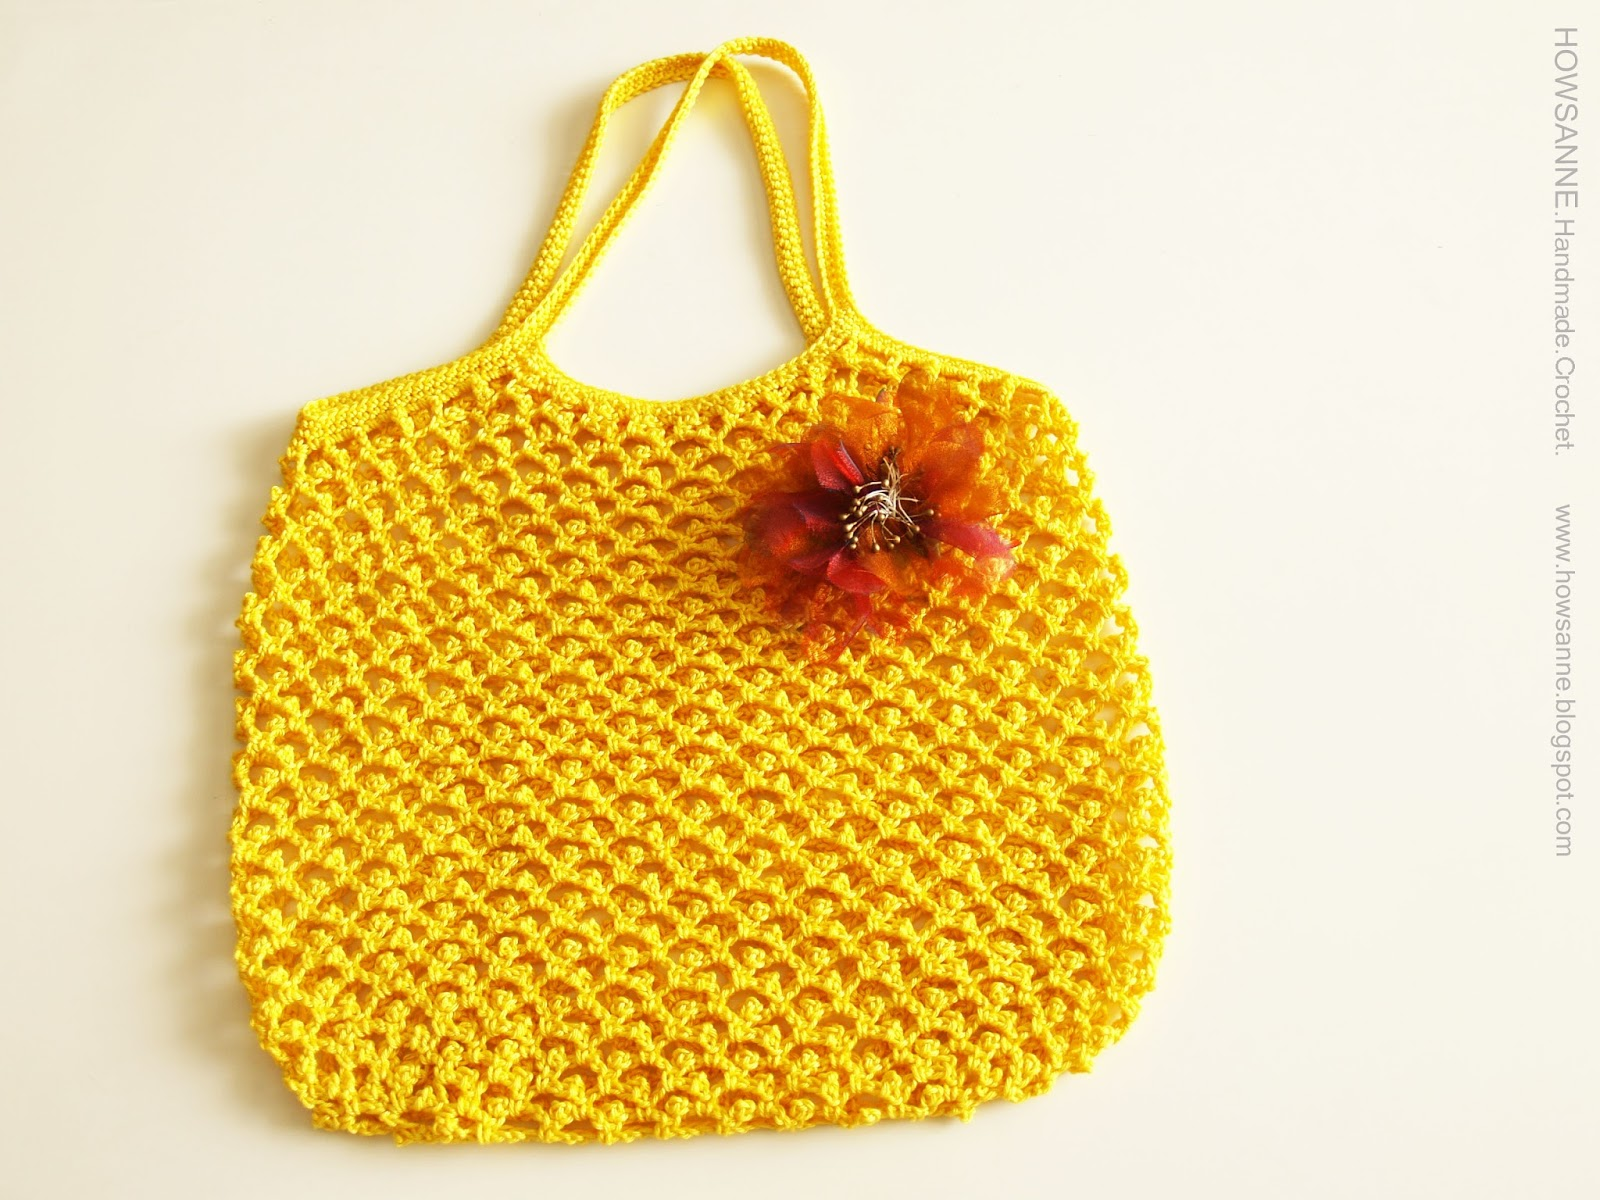 Howsanne handmade crochet 100% cotton bag